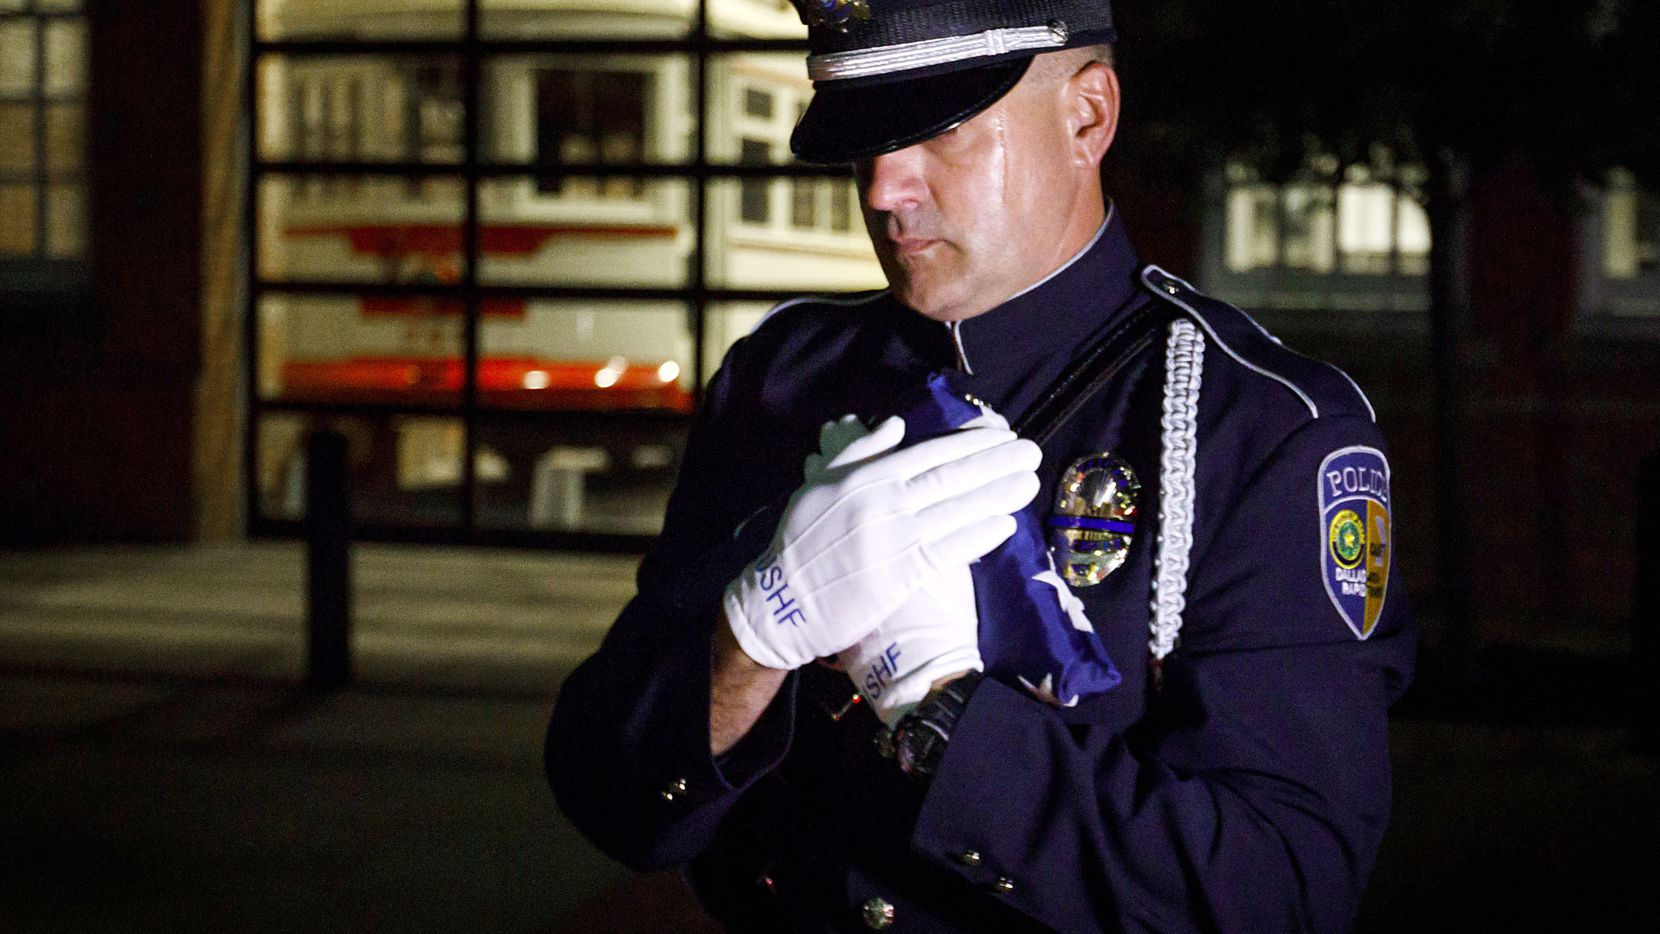 DART Police officer Chris Cobb carries the US Honor Flag as the flag arrives at DART Police headquarters after being transferred from Dallas Police headquarters in the early morning hours of Tuesday, July 11, 2017, in Dallas.